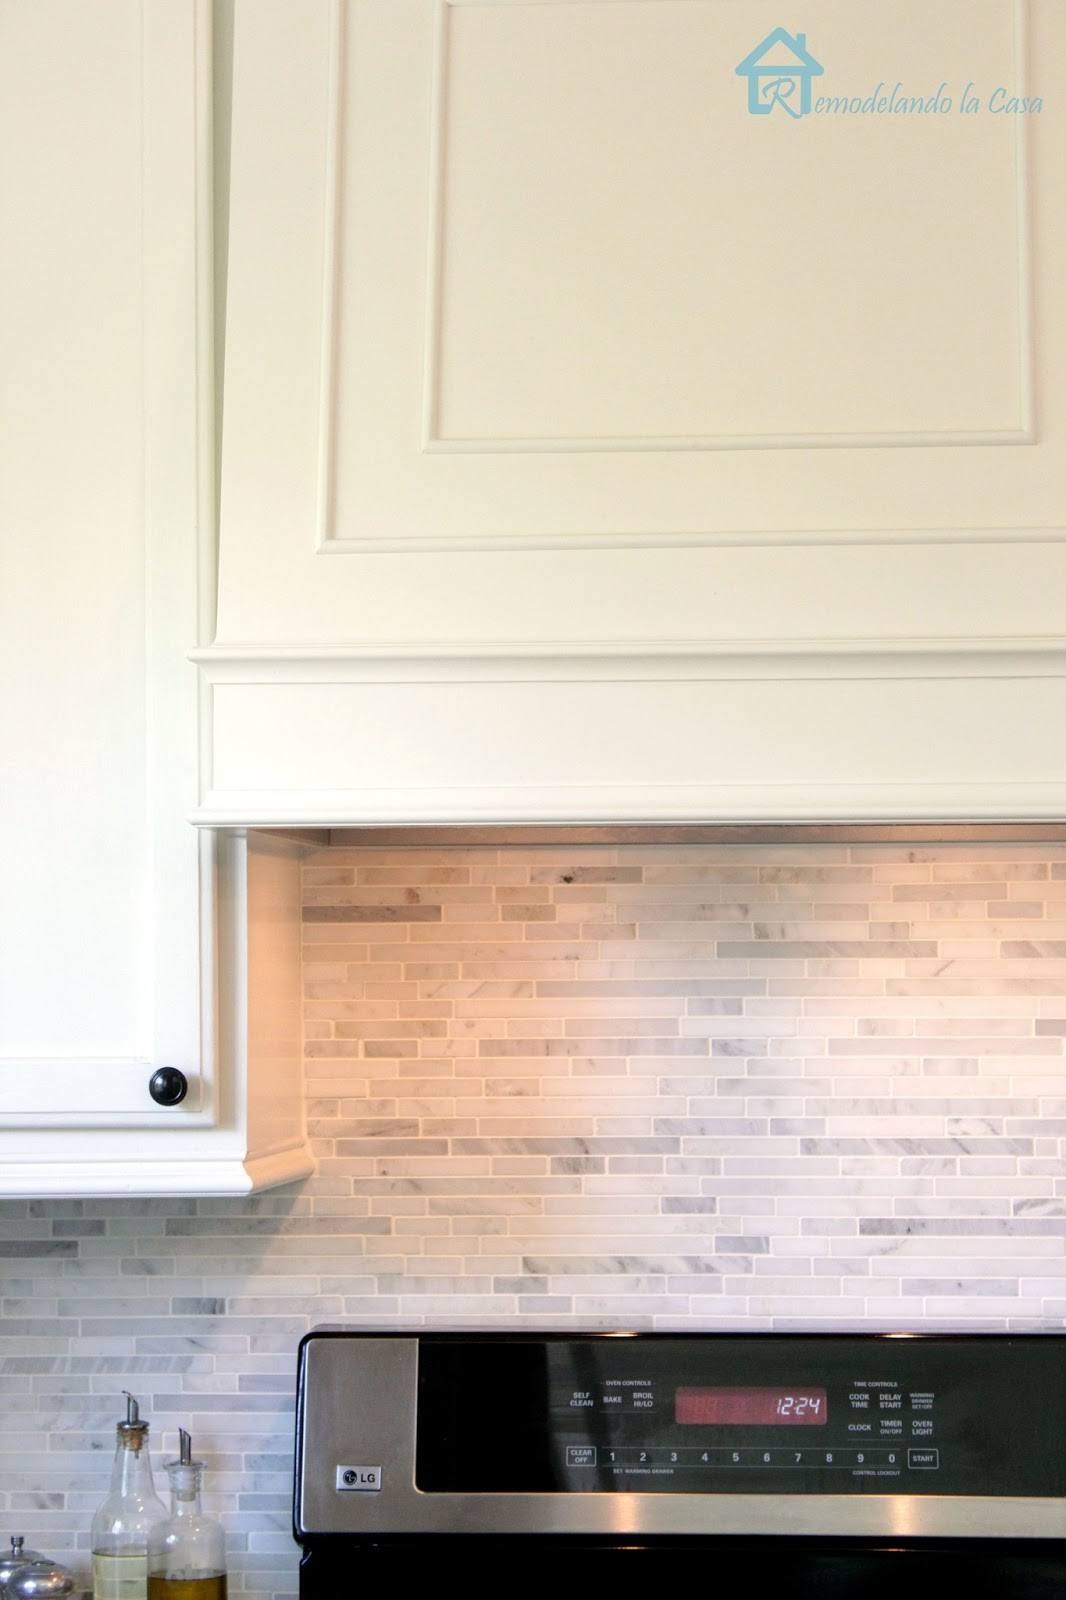 Remodelando La Casa: Revamp Your Kitchen With The Home Depot